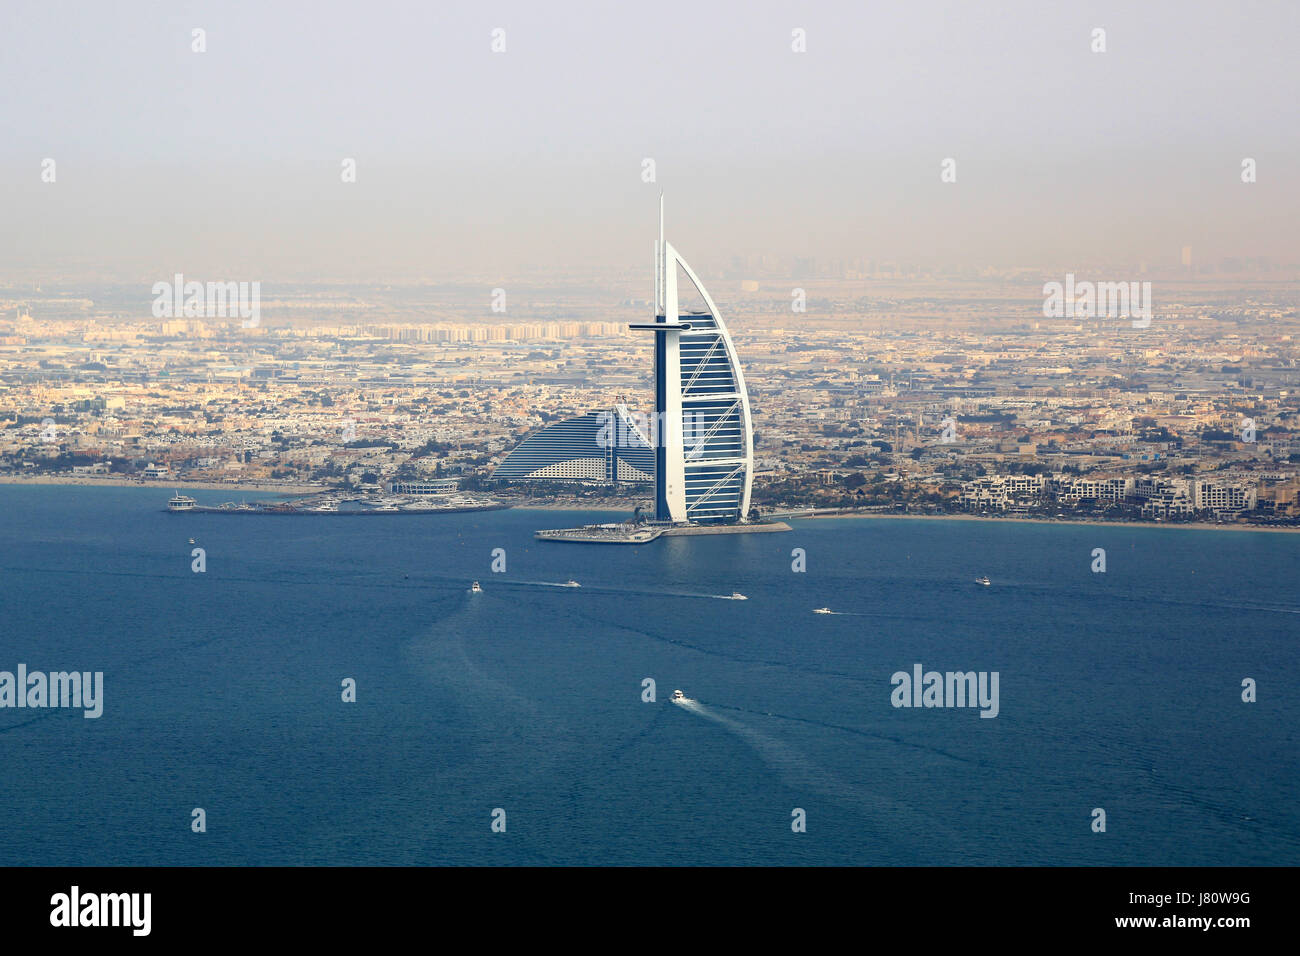 Dubai Burj Al Arab Hotel sea aerial view photography UAE - Stock Image